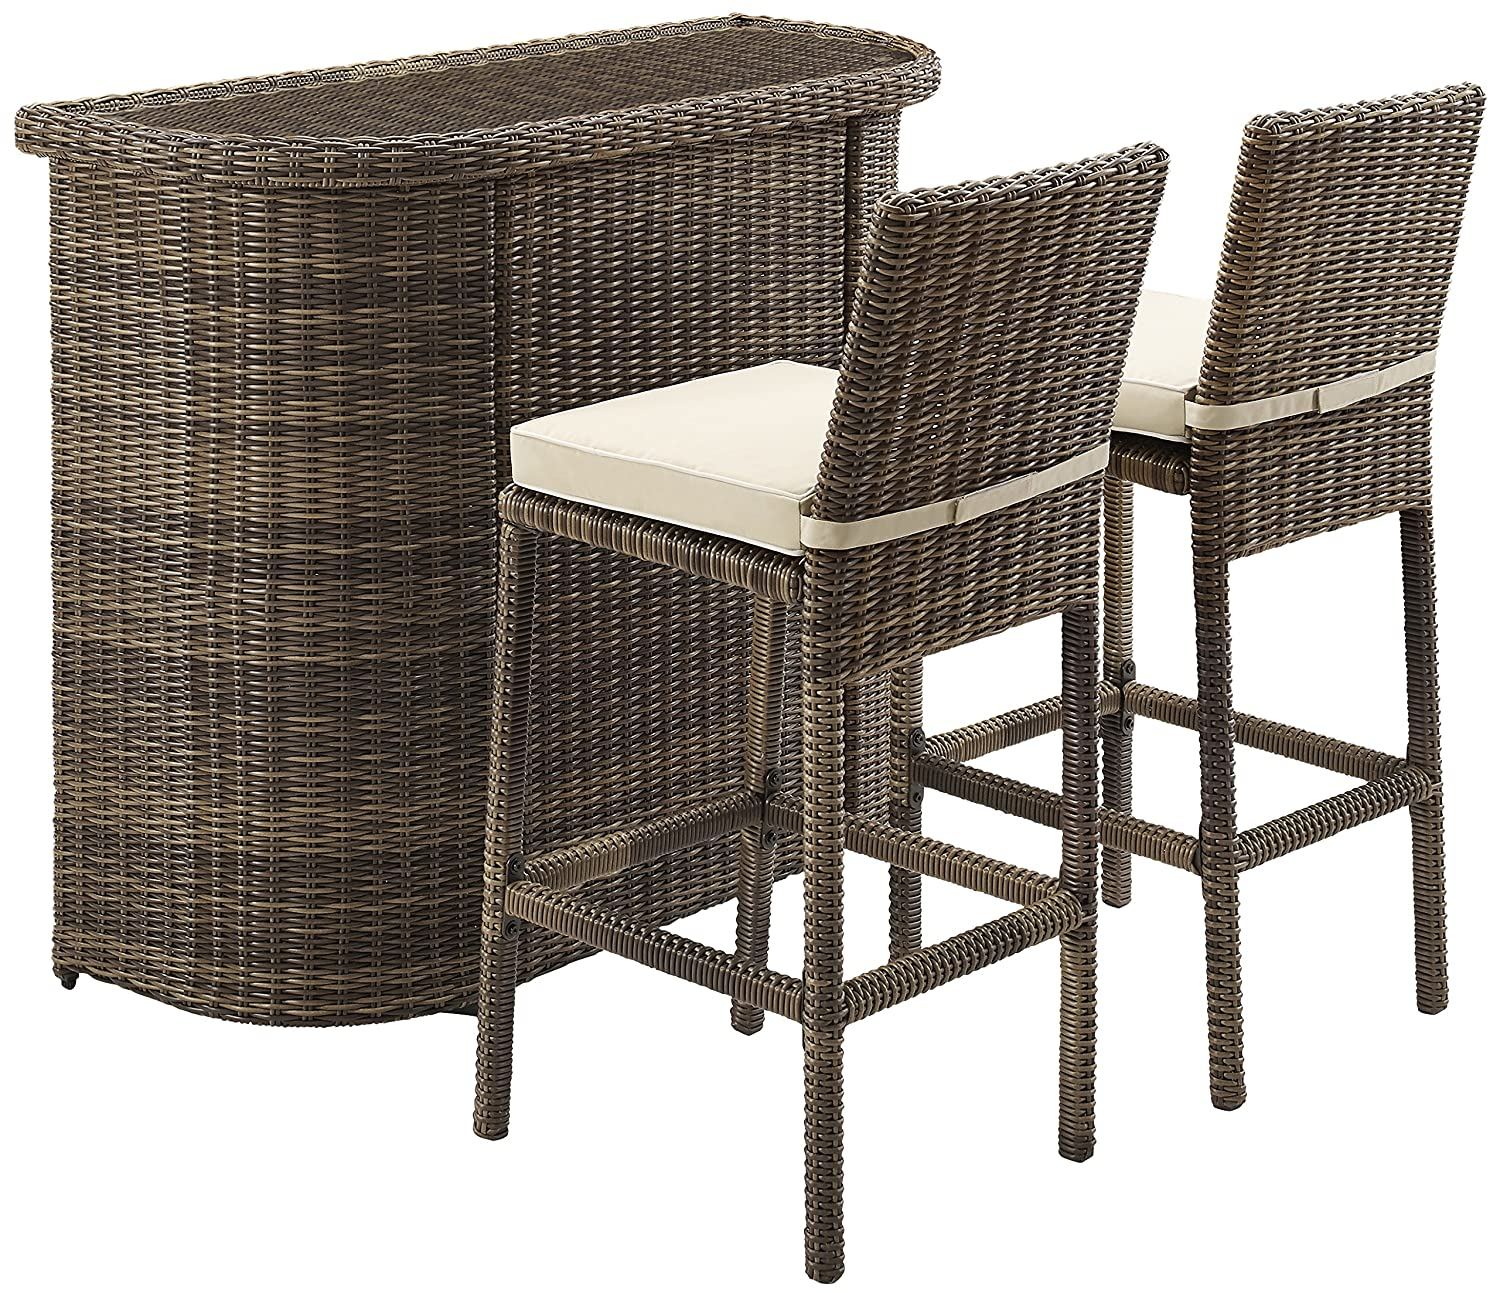 Crosley Furniture 3-Piece Bradenton Outdoor Wicker Bar Set with Two Stools and Cushions - Sand